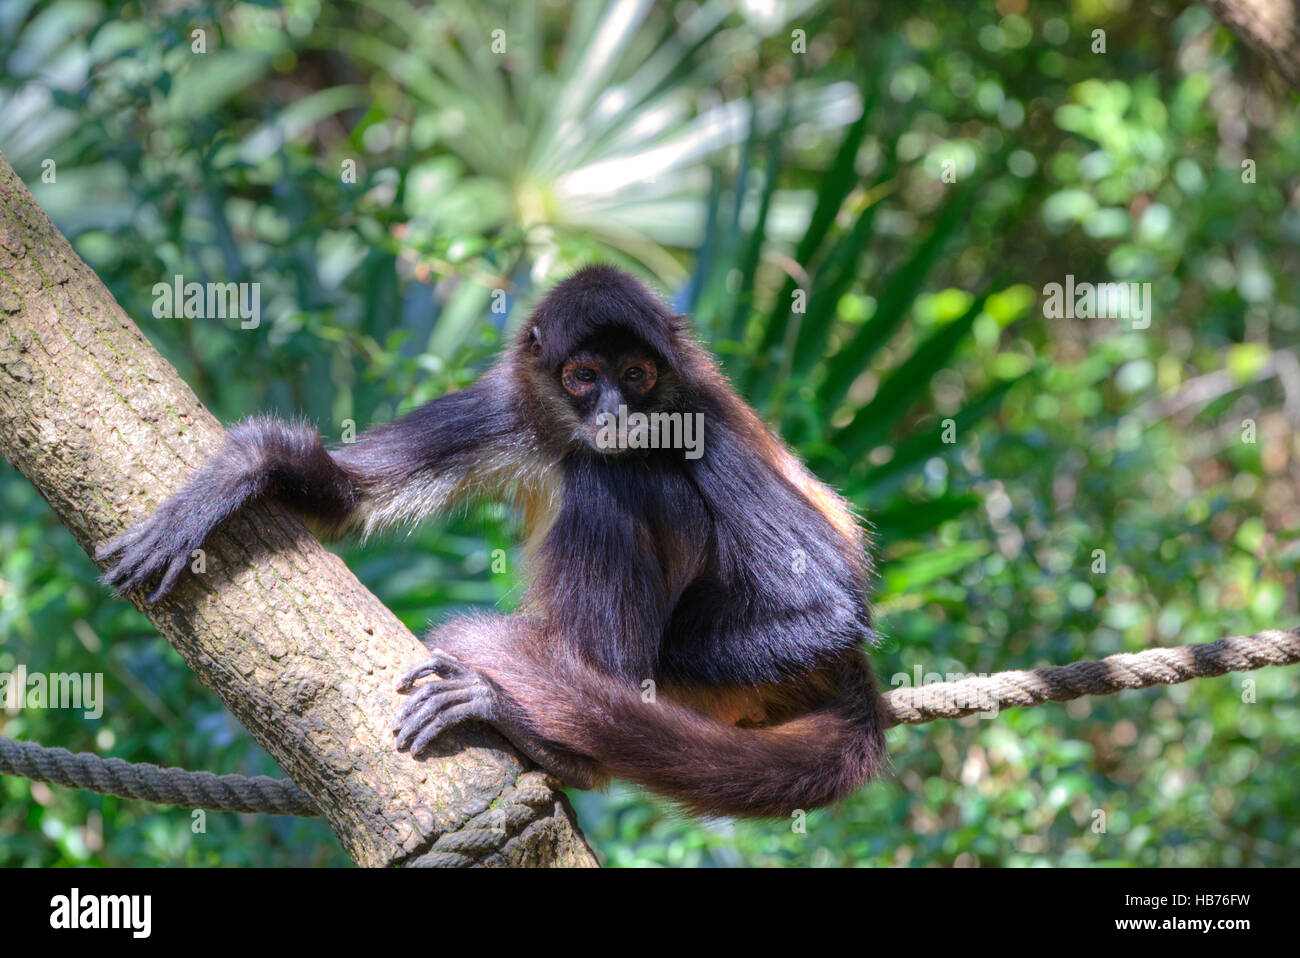 Spider Monkey (Latin-Ateles fusciceps), Belize Zoo, near Belize City, Belize - Stock Image